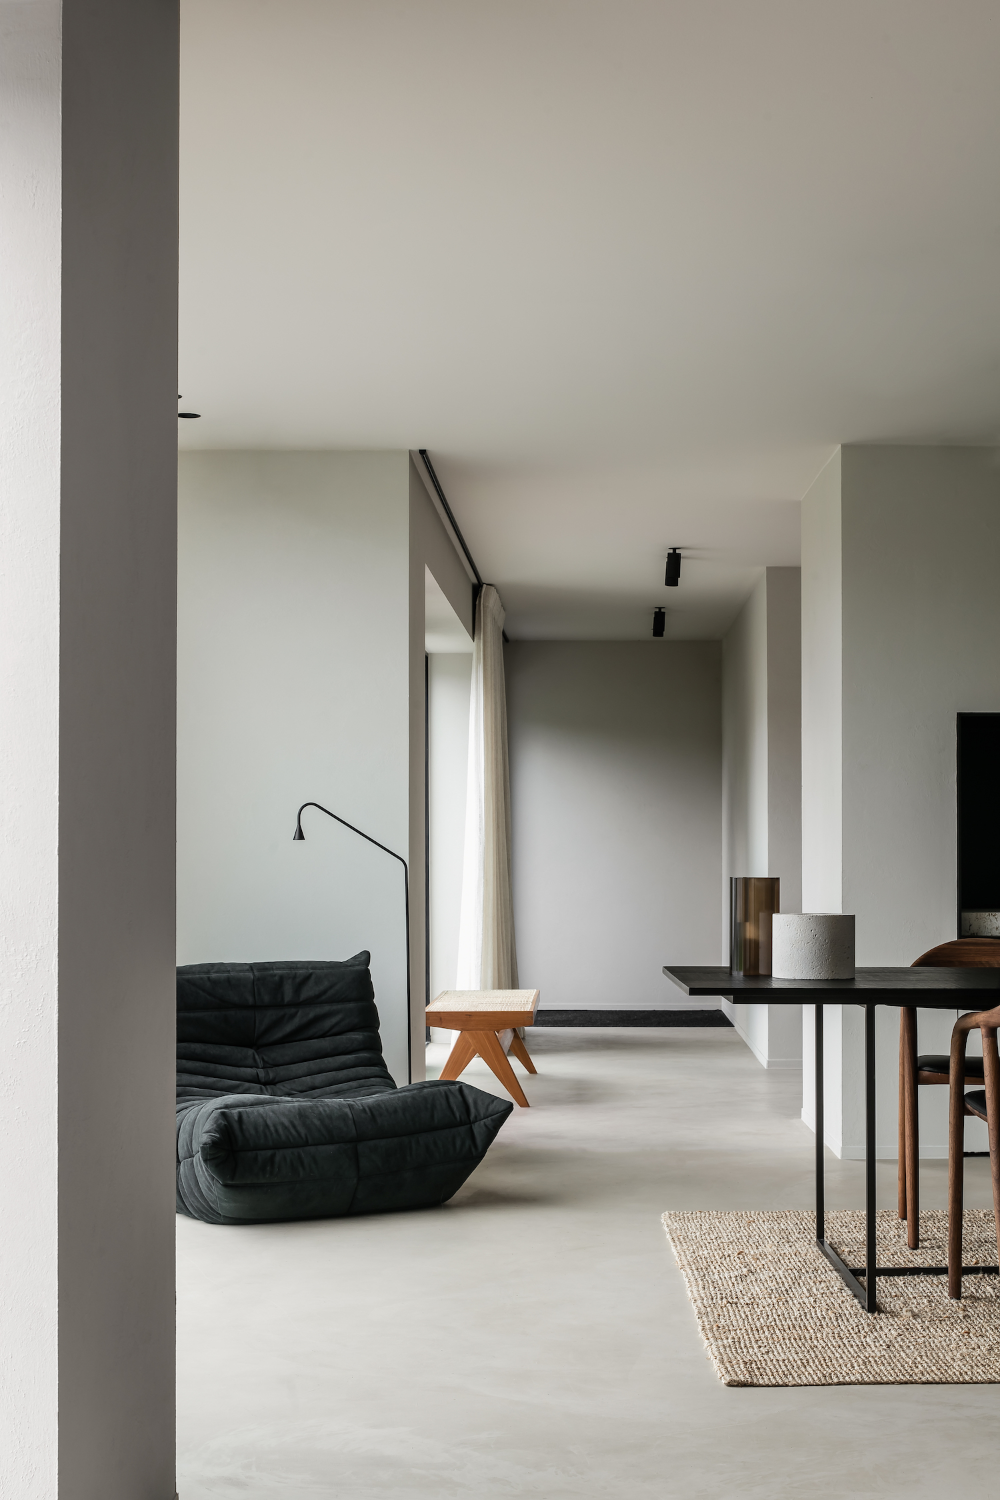 Photo of Project DD is a minimalist residence designed by Belgium-based architect Pieter … – My Blog